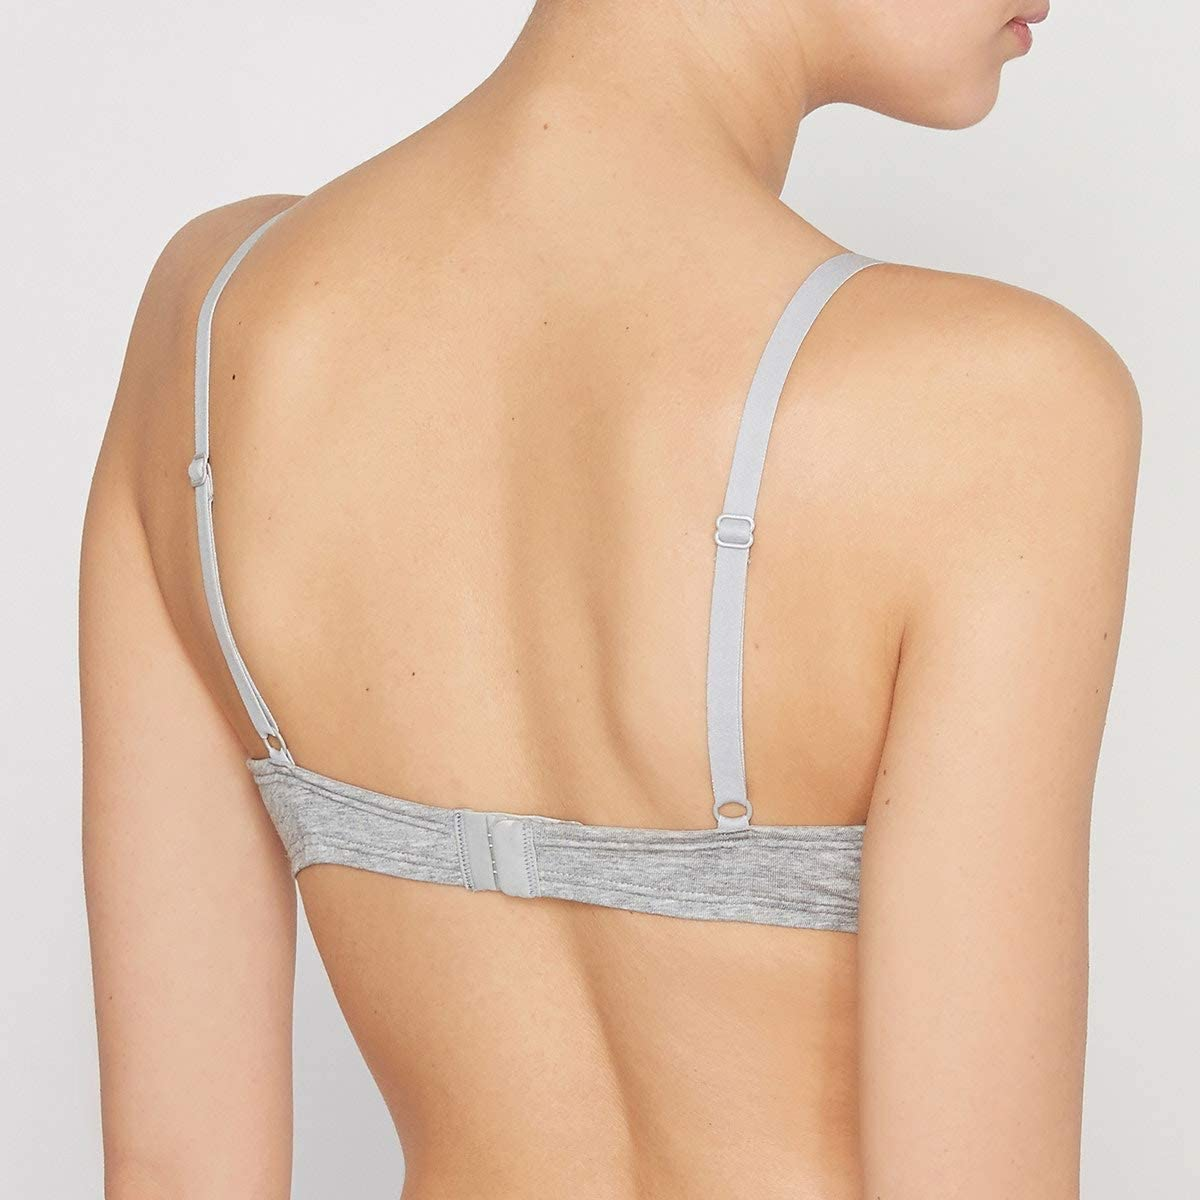 La Redoute Collections Womens Padded Cotton Bra Grey Size US 32C